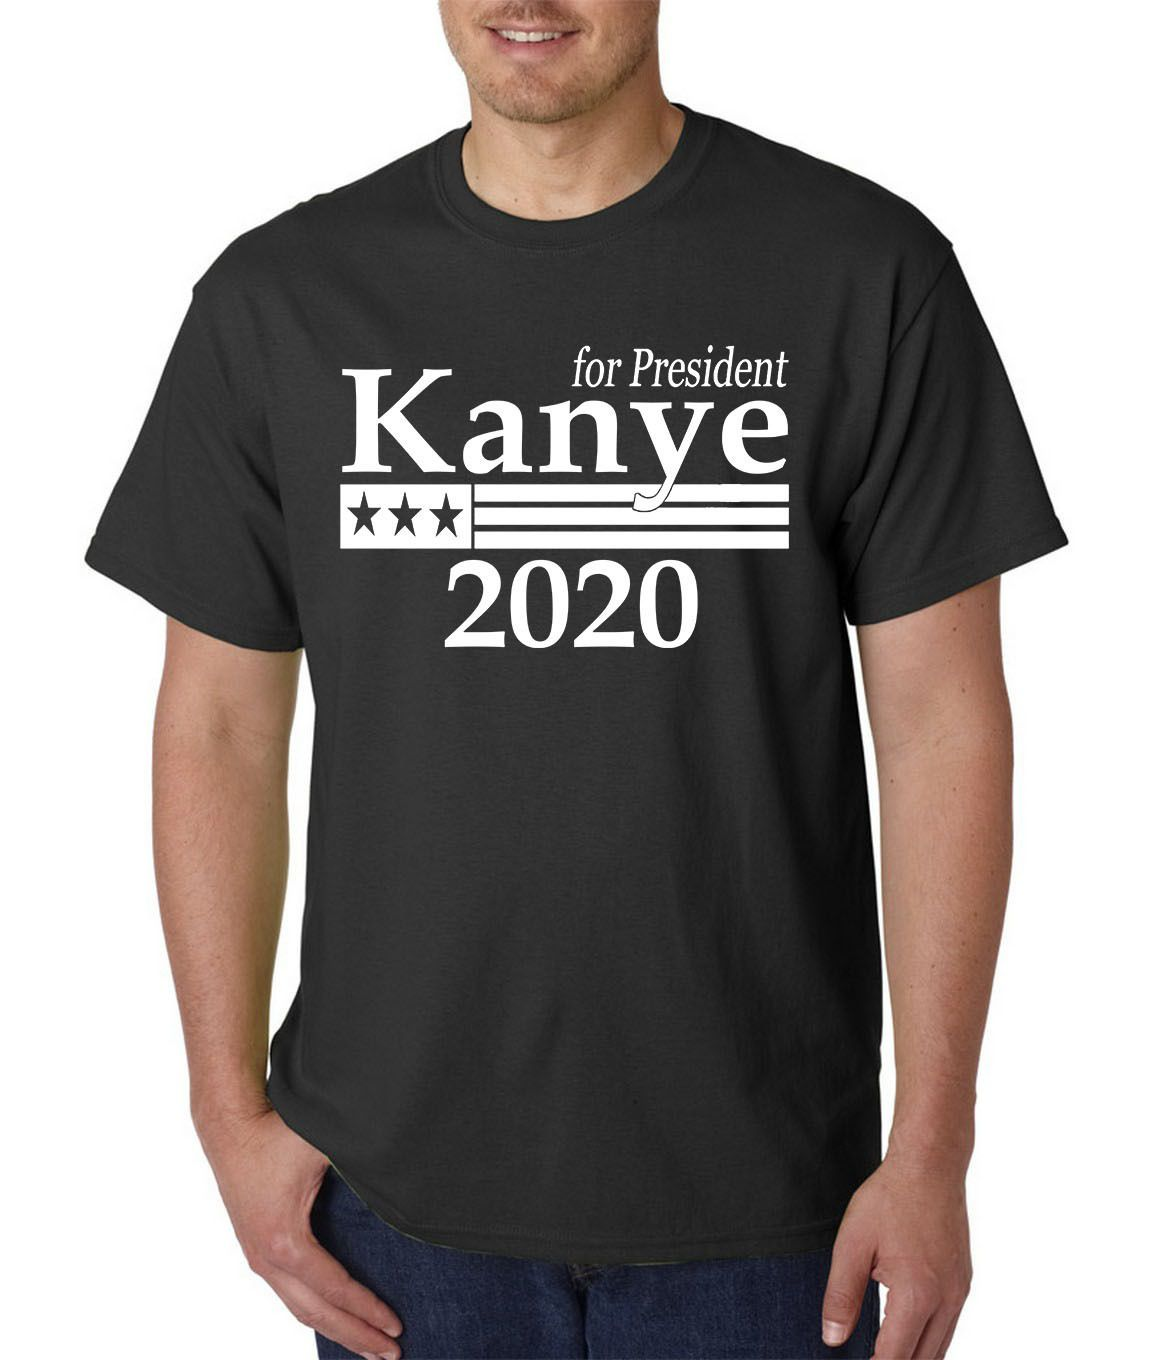 Click To Buy Kanye West For President 2020 T Shirt Funny Rap Hip Hop Tee Mens T Shirts Fashion 2017 Clot Mens Tshirts Printed Shirts T Shirts For Women